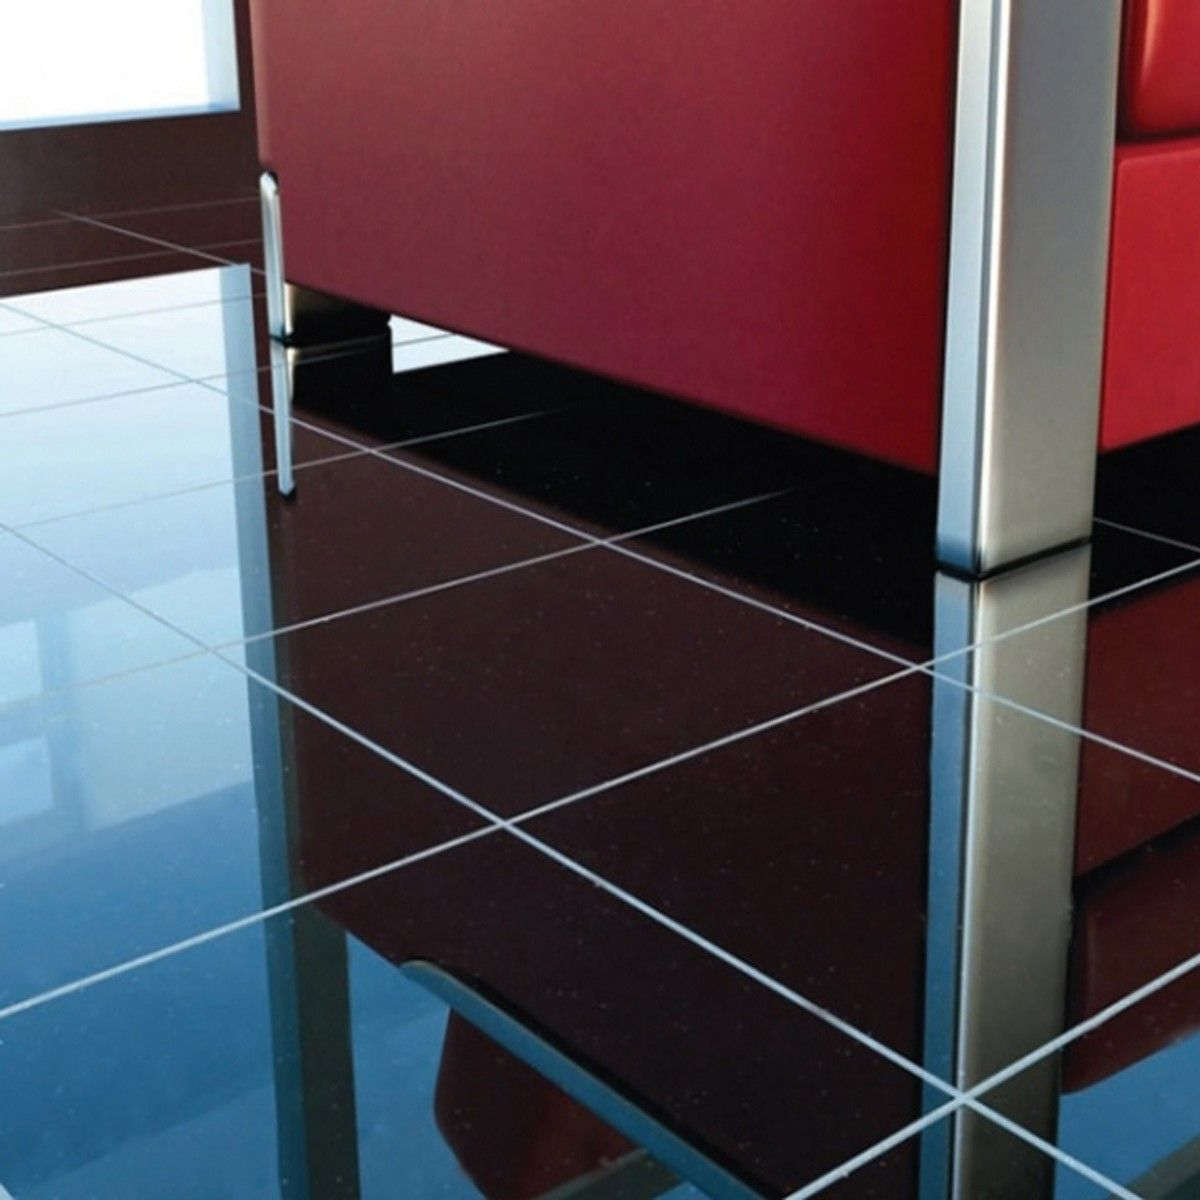 This Black Granite Floor Tile Is Suitable For Indoor Use Throughout The Home It Has A Glossy Finish Giving A Mirror Like Granite Flooring Tile Floor Flooring